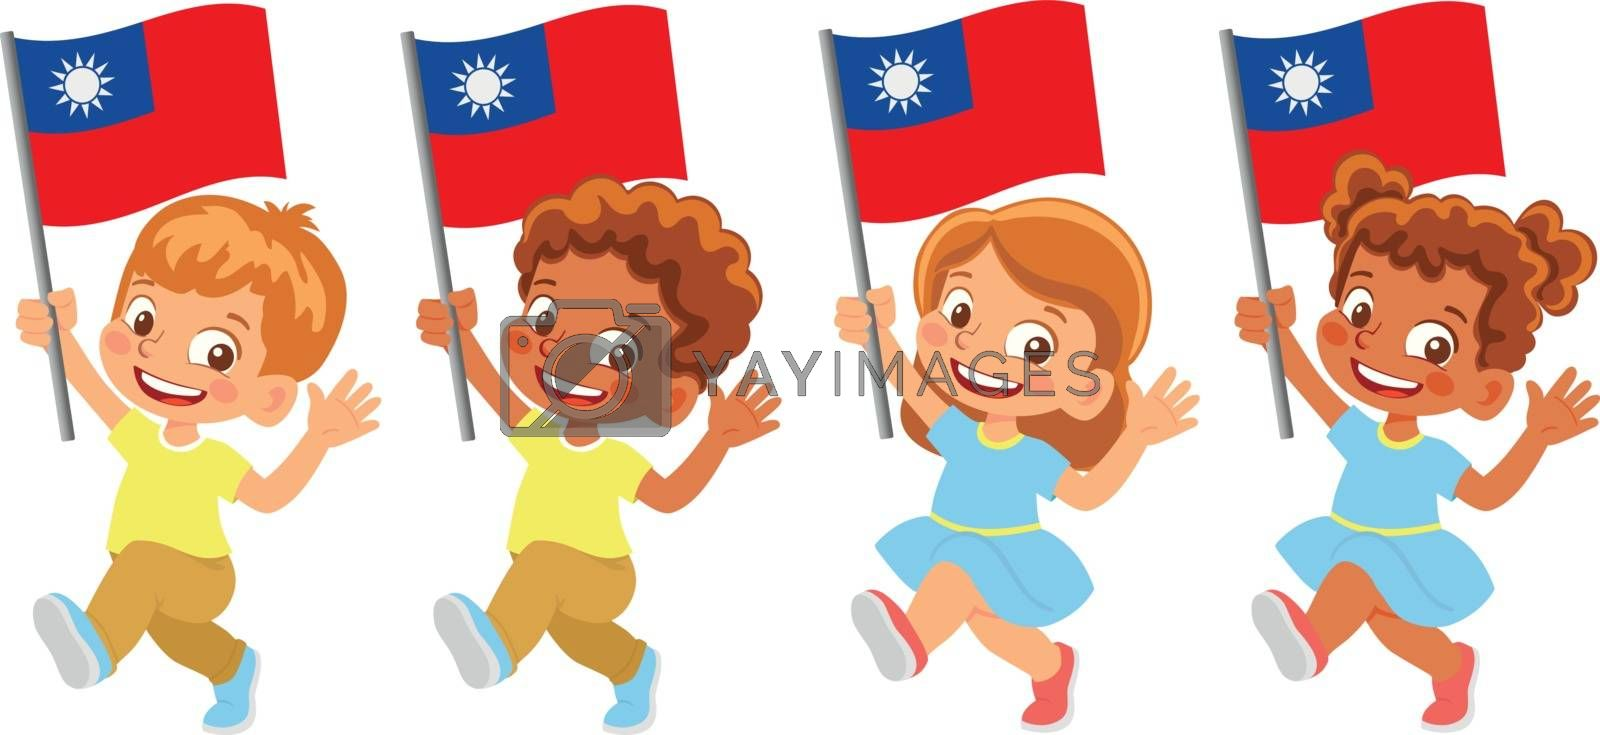 Taiwan flag in hand set by Visual-Content